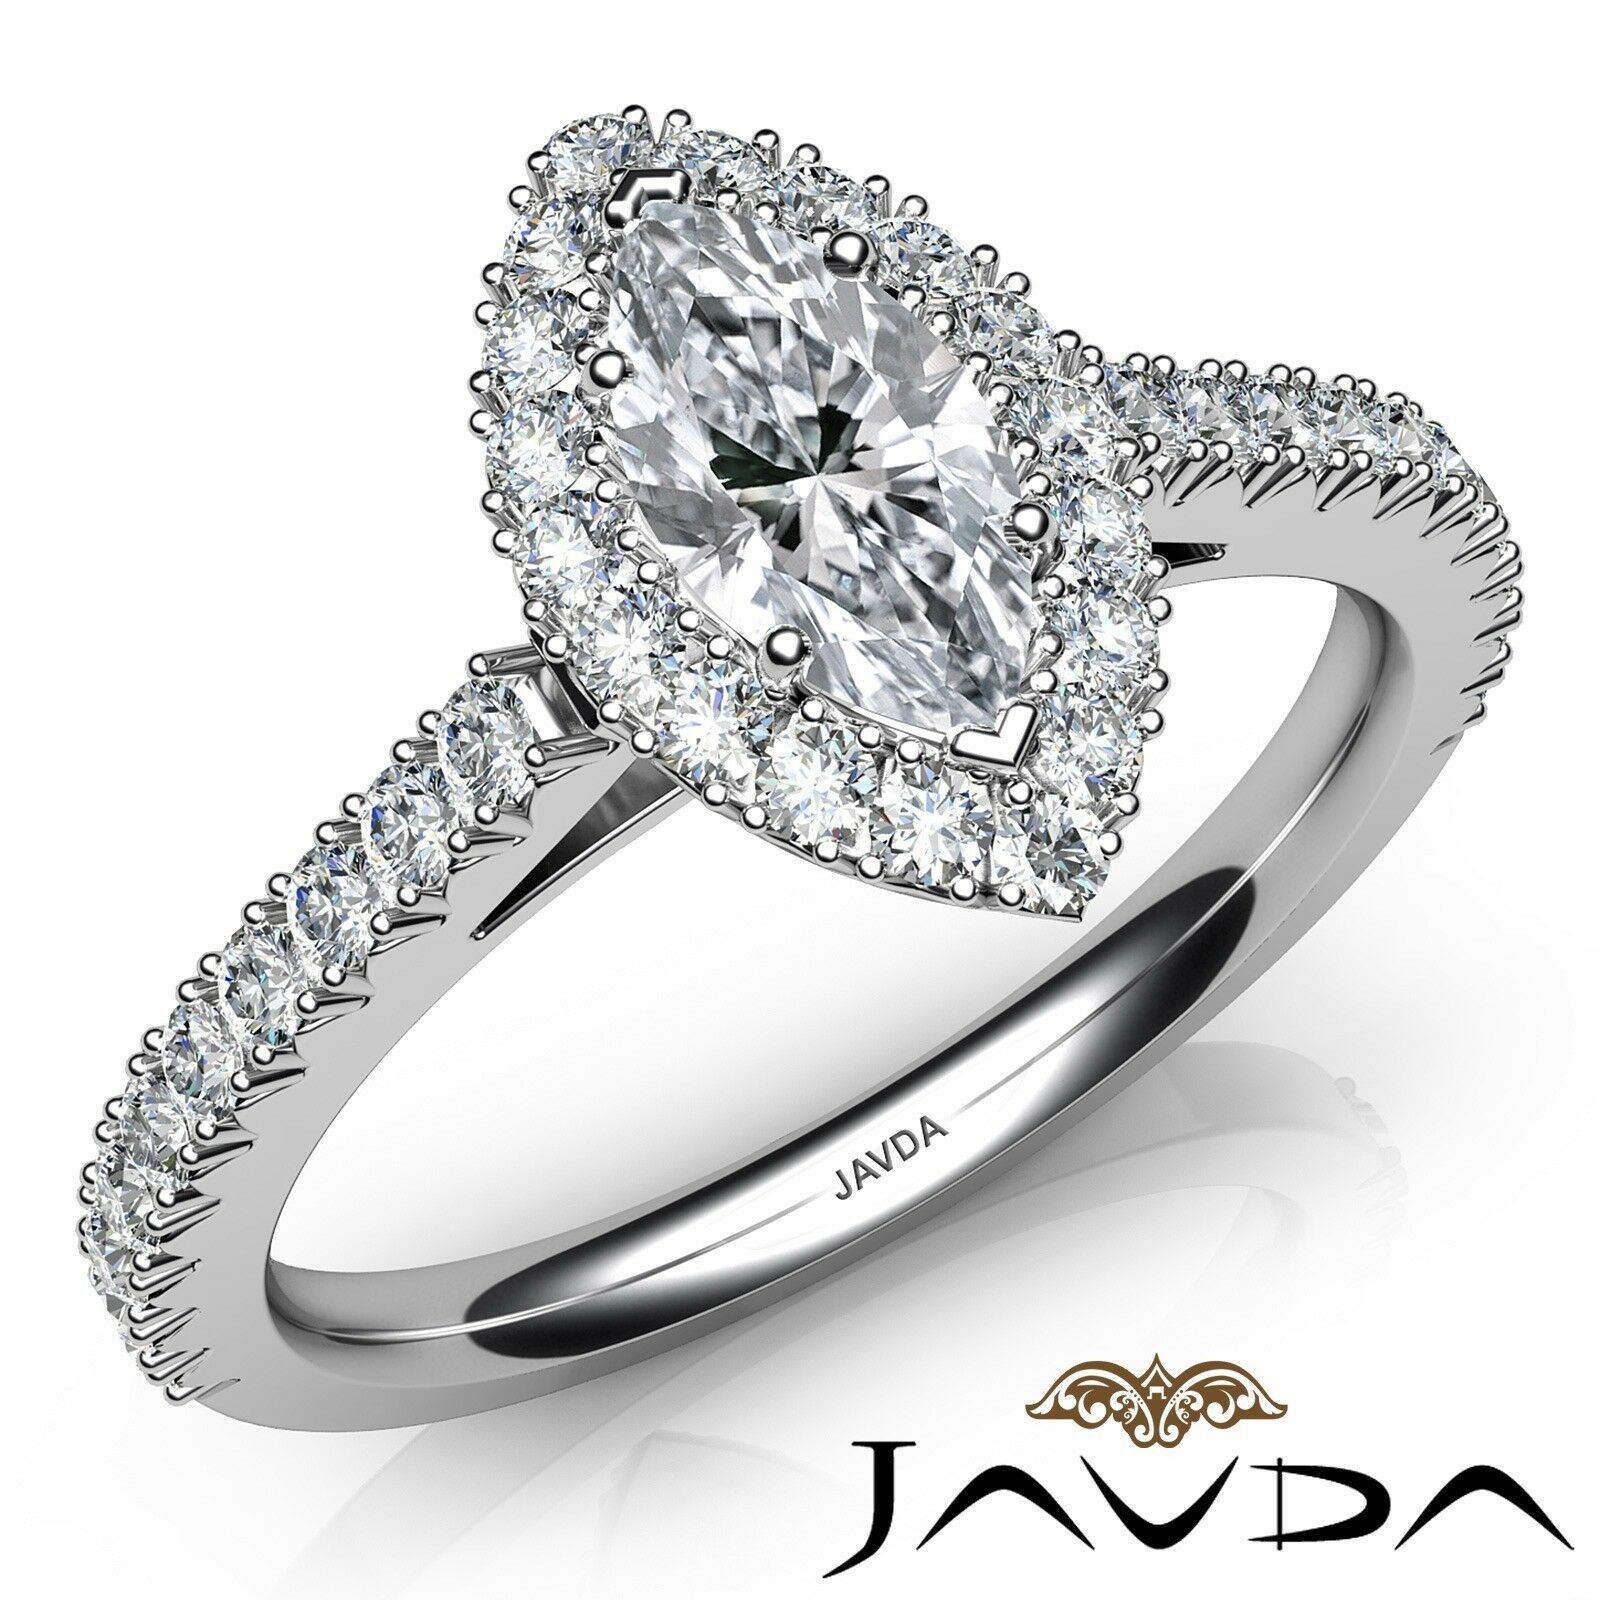 1.8ct French Cut Pave Set Halo Marquise Diamond Engagement Ring GIA F-SI2 W Gold